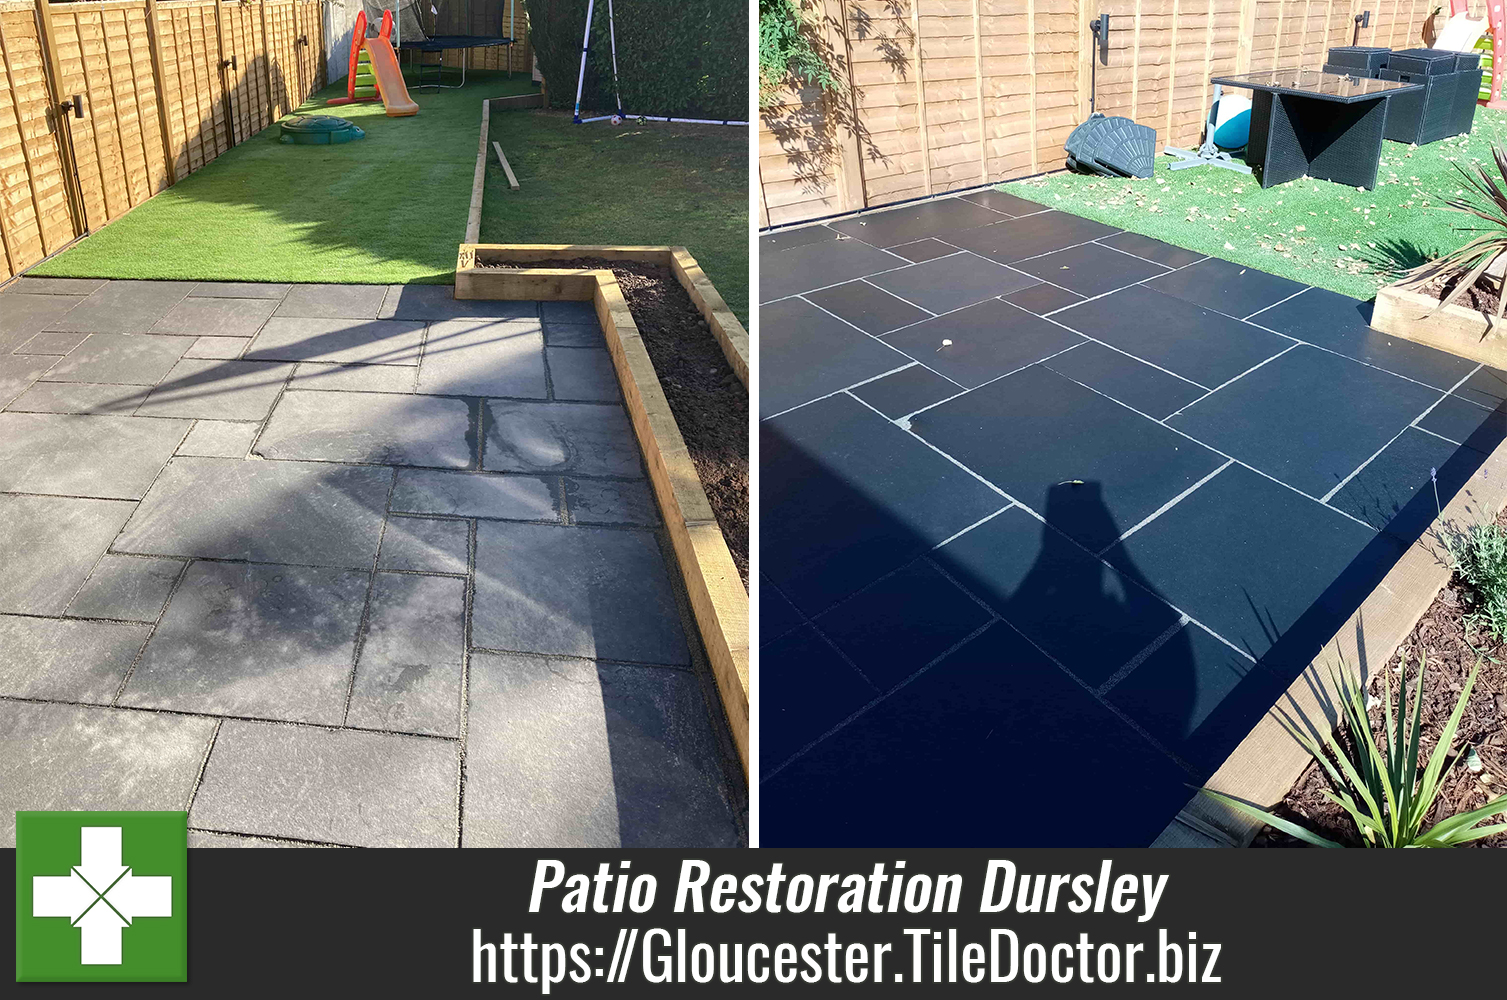 Black Limestone Patio Restoration Dursley